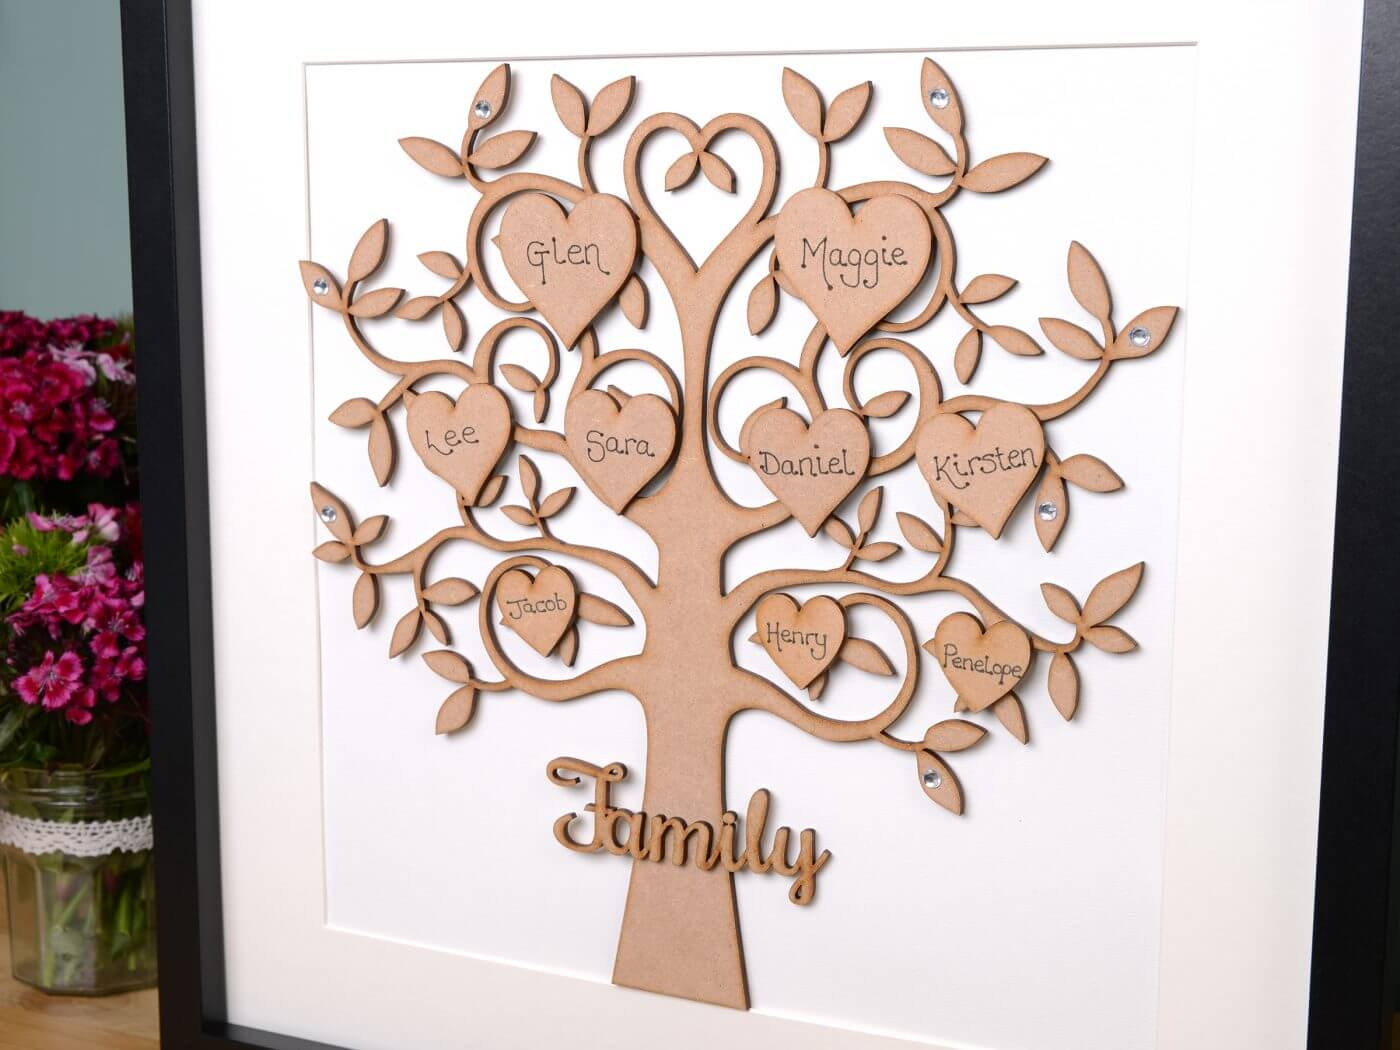 Enthralling Zoom Images Wooden Family Tree Frame Large Family Tree Free Uk Delivery Family Tree Frames Wall Family Tree Frame Wall Collage photos Family Tree Picture Frame